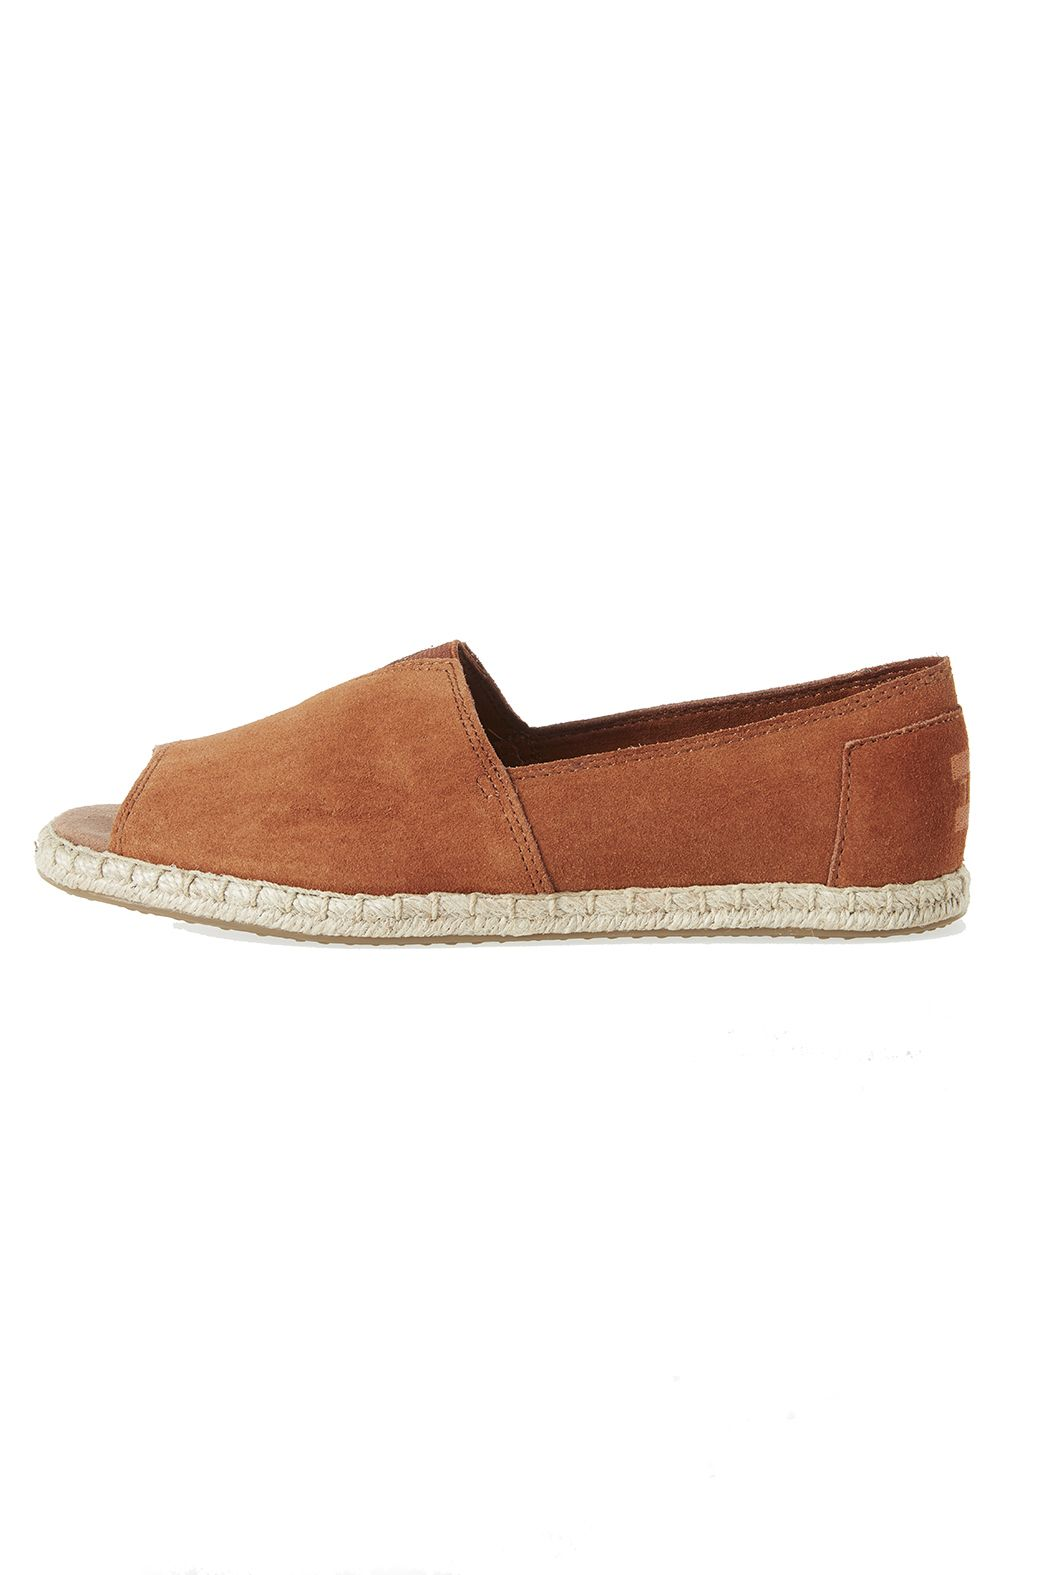 Featuring a sophisticated suede upper and a summery rope sole, our open-toe Alpargatas are perfect for warm days and nights out and about.   Alpargata Open Toe by TOMS. Shoes - Flats - Espadrilles Virginia